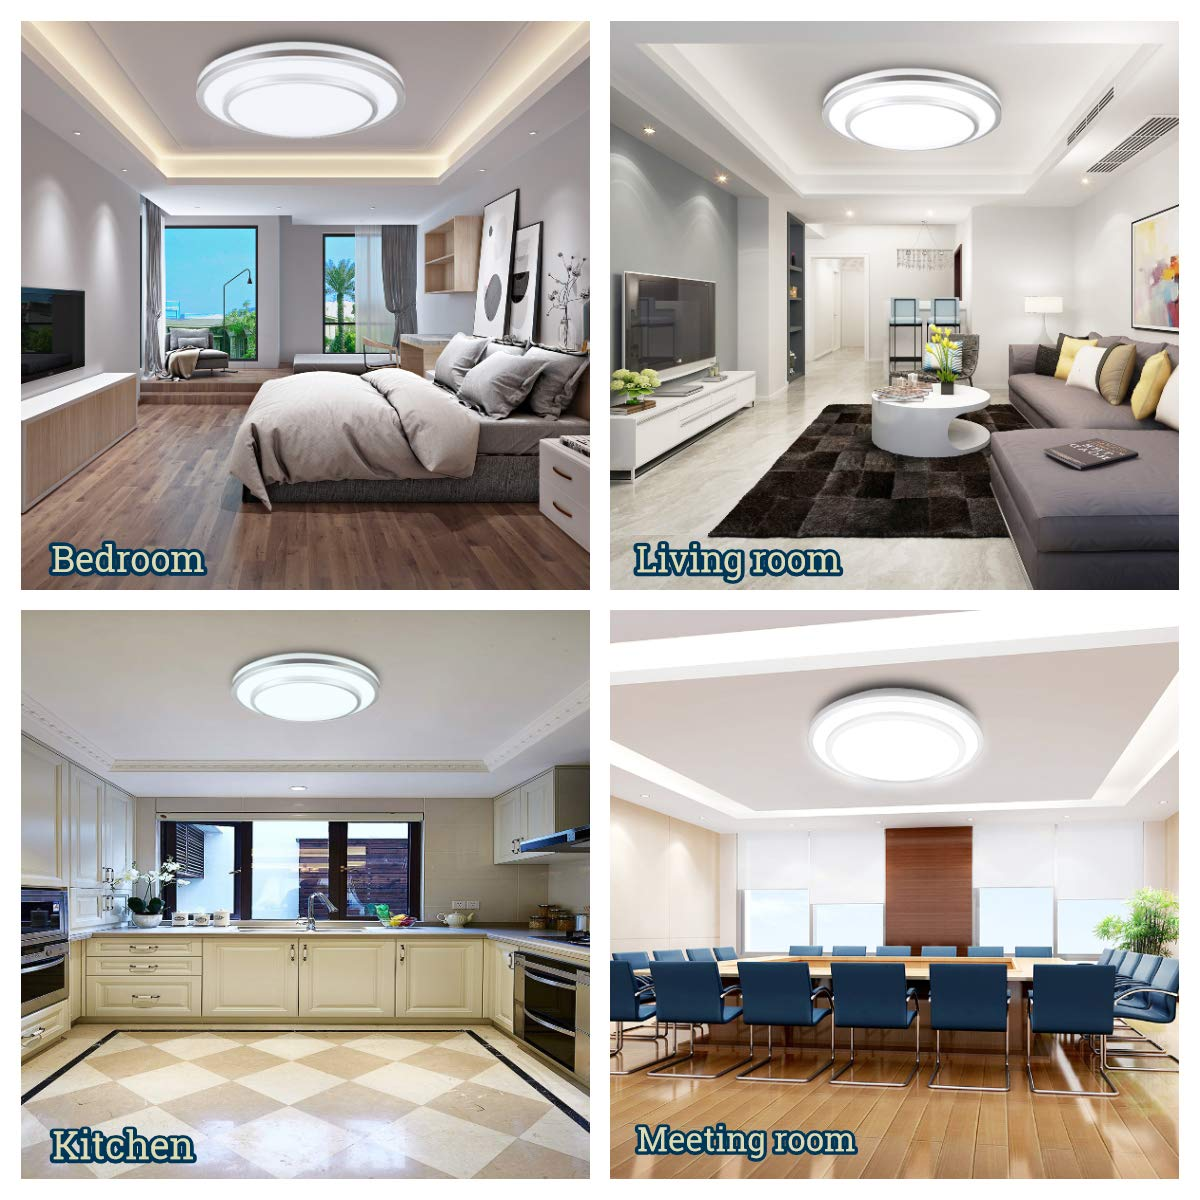 DLLT 48W Dimmable Led Flush Mount Ceiling Light Lighting with Remote-20 Inch Close to Ceiling Lights Fixture for Bedroom/Living Room/Dining Room, 3000K-6000K Color Changeable by DINGLILIGHTING (Image #3)